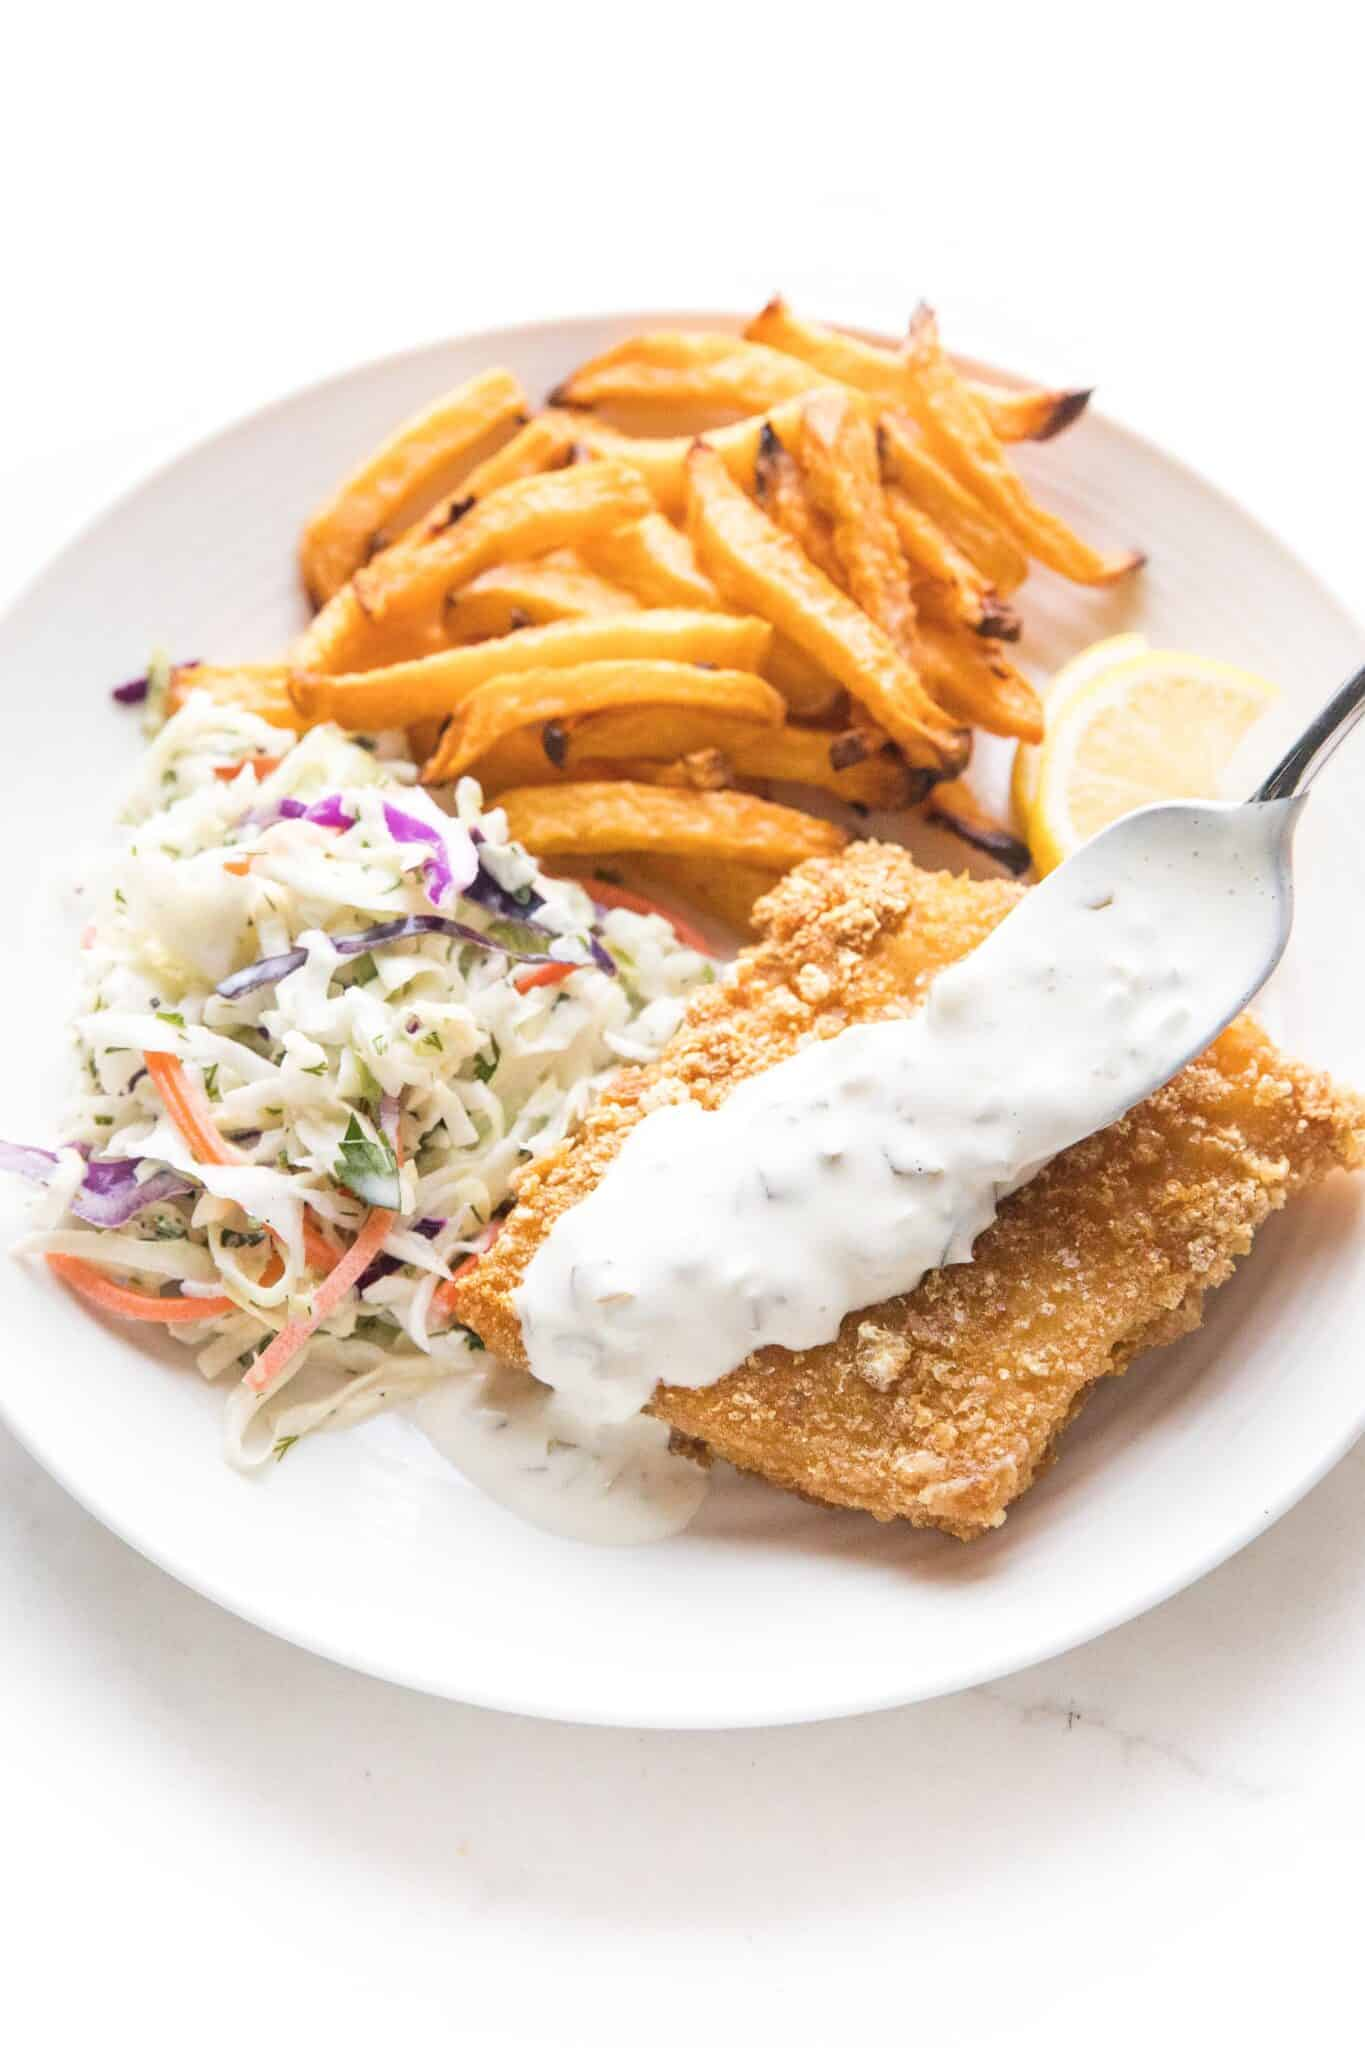 Keto Fish and Chips